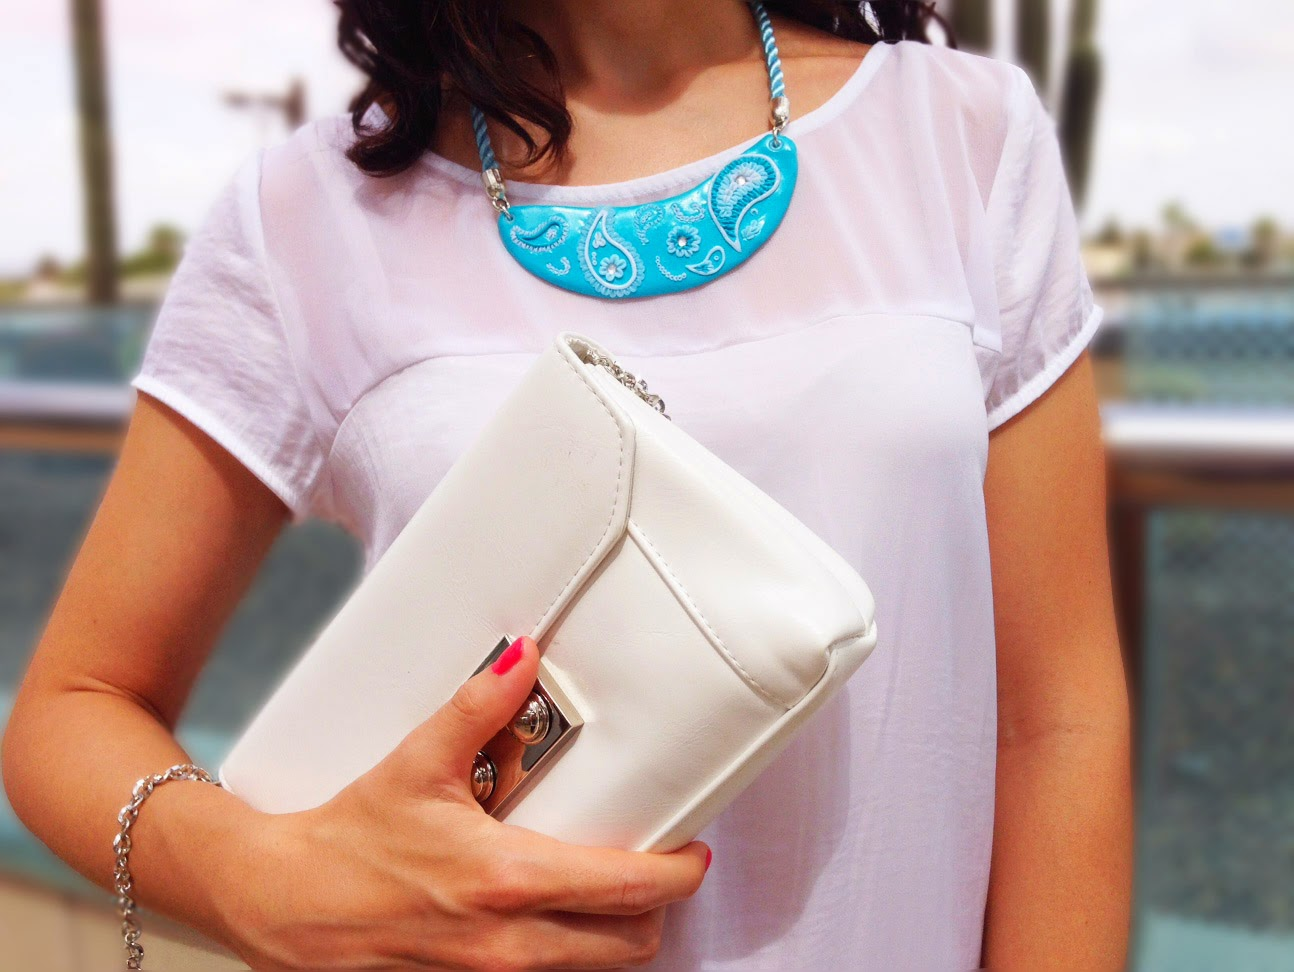 Collar NM Designs, Bolso MARYPAZshoes